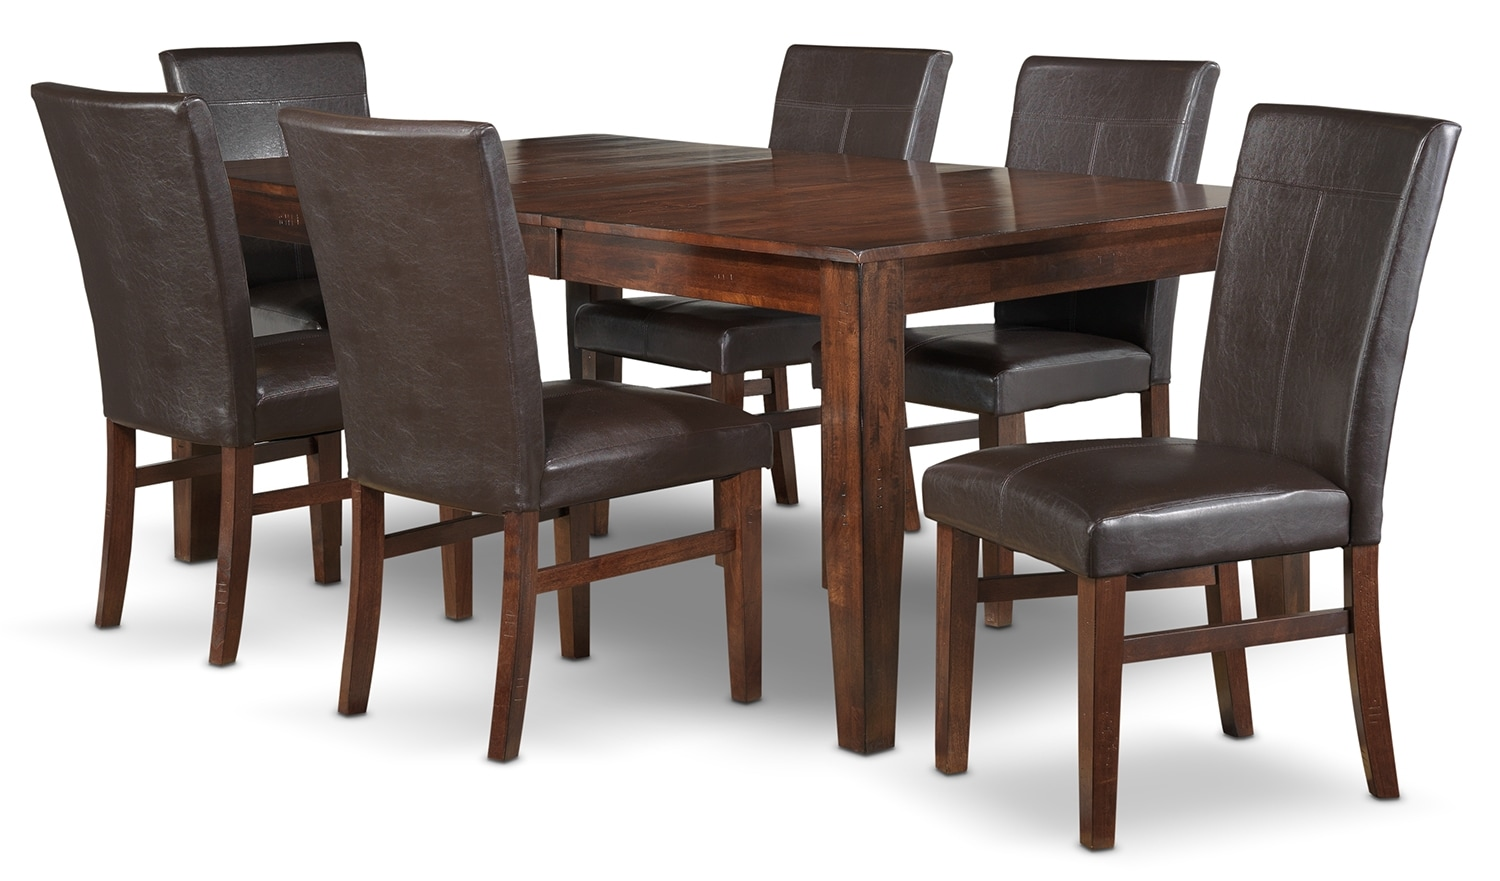 Kona 7-Piece Dining Room Set - Dark Oak